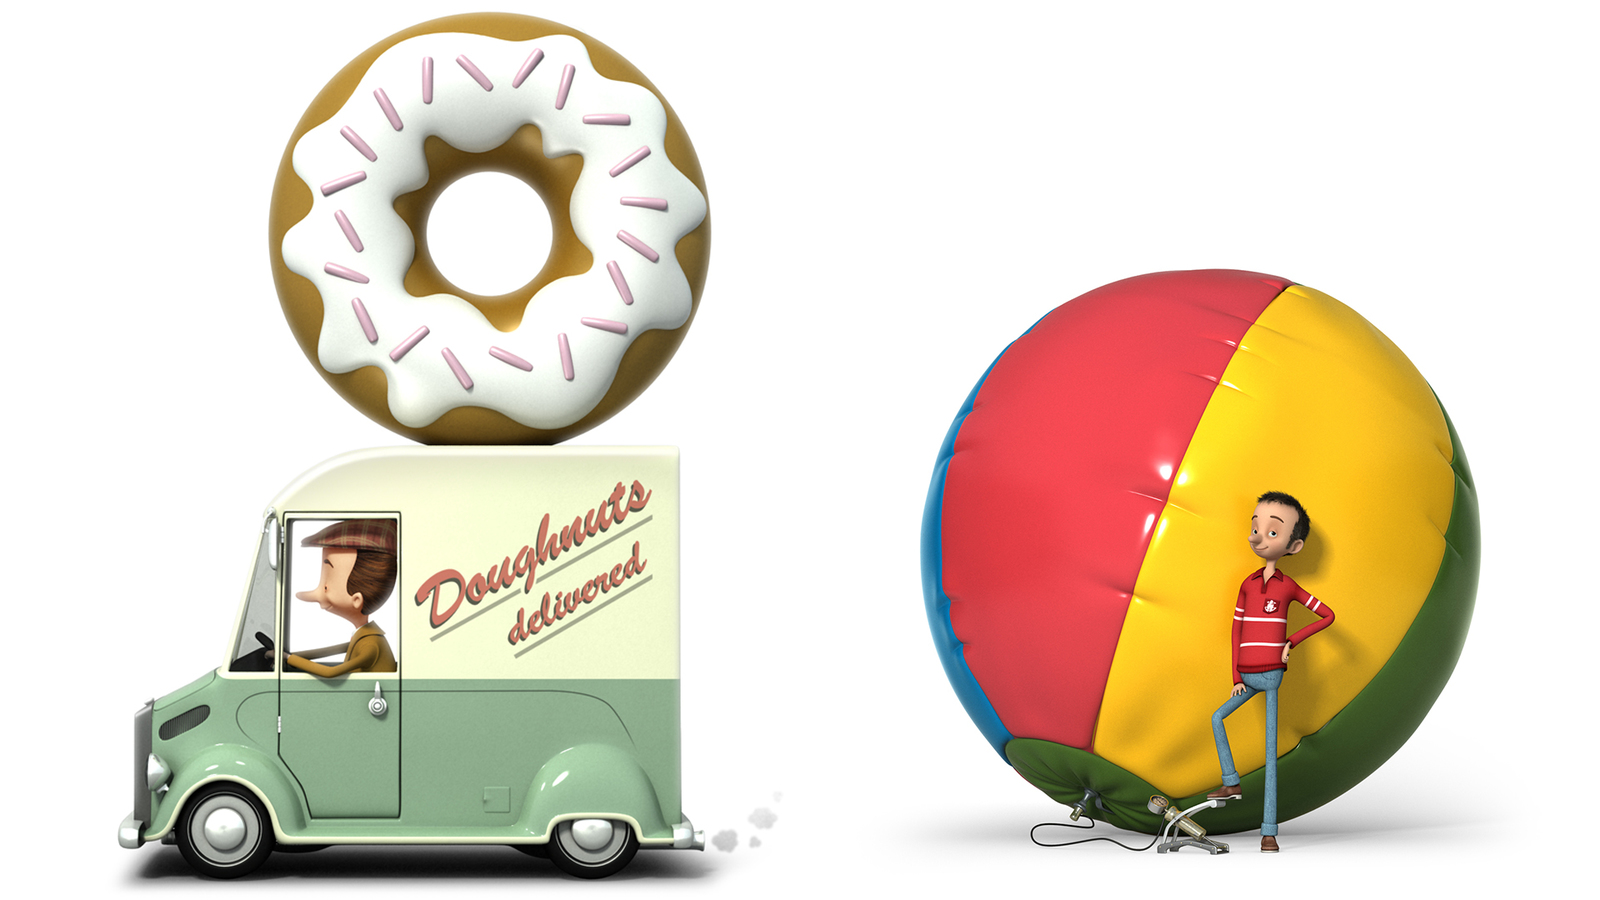 collection of 3d stills from for the journey campaign, doughnut driver and beach ball pumping up by man